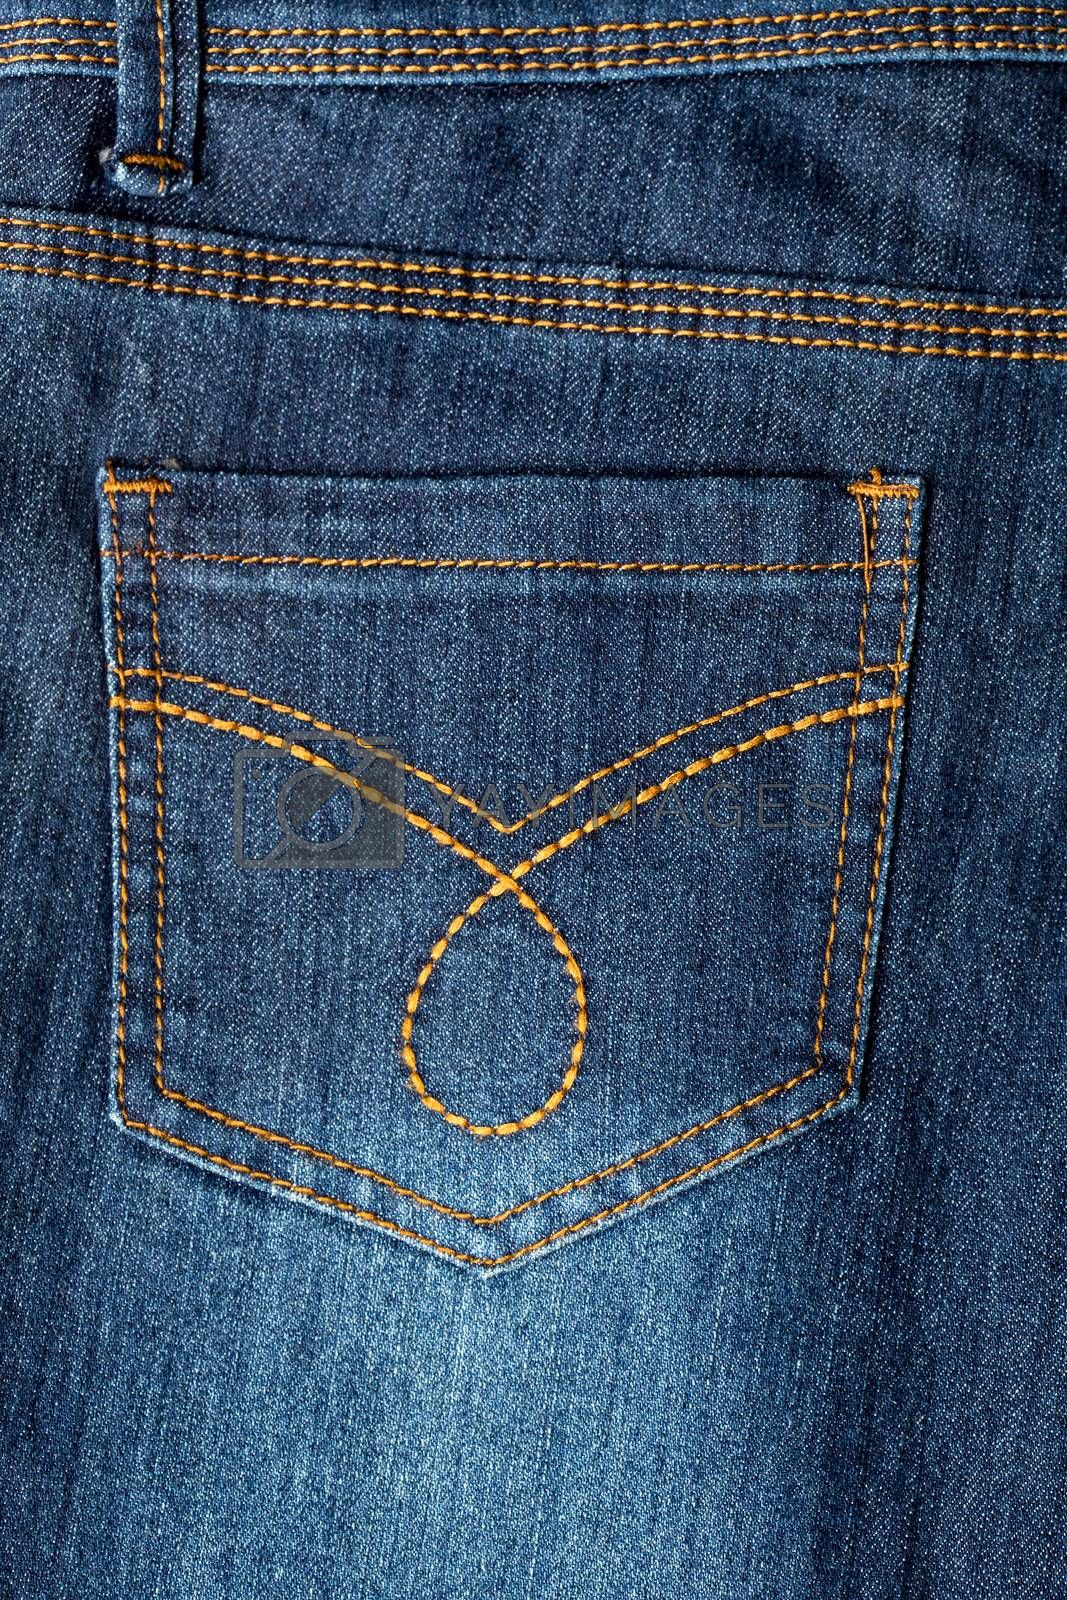 Closeup image of a denim jeans, back pocket